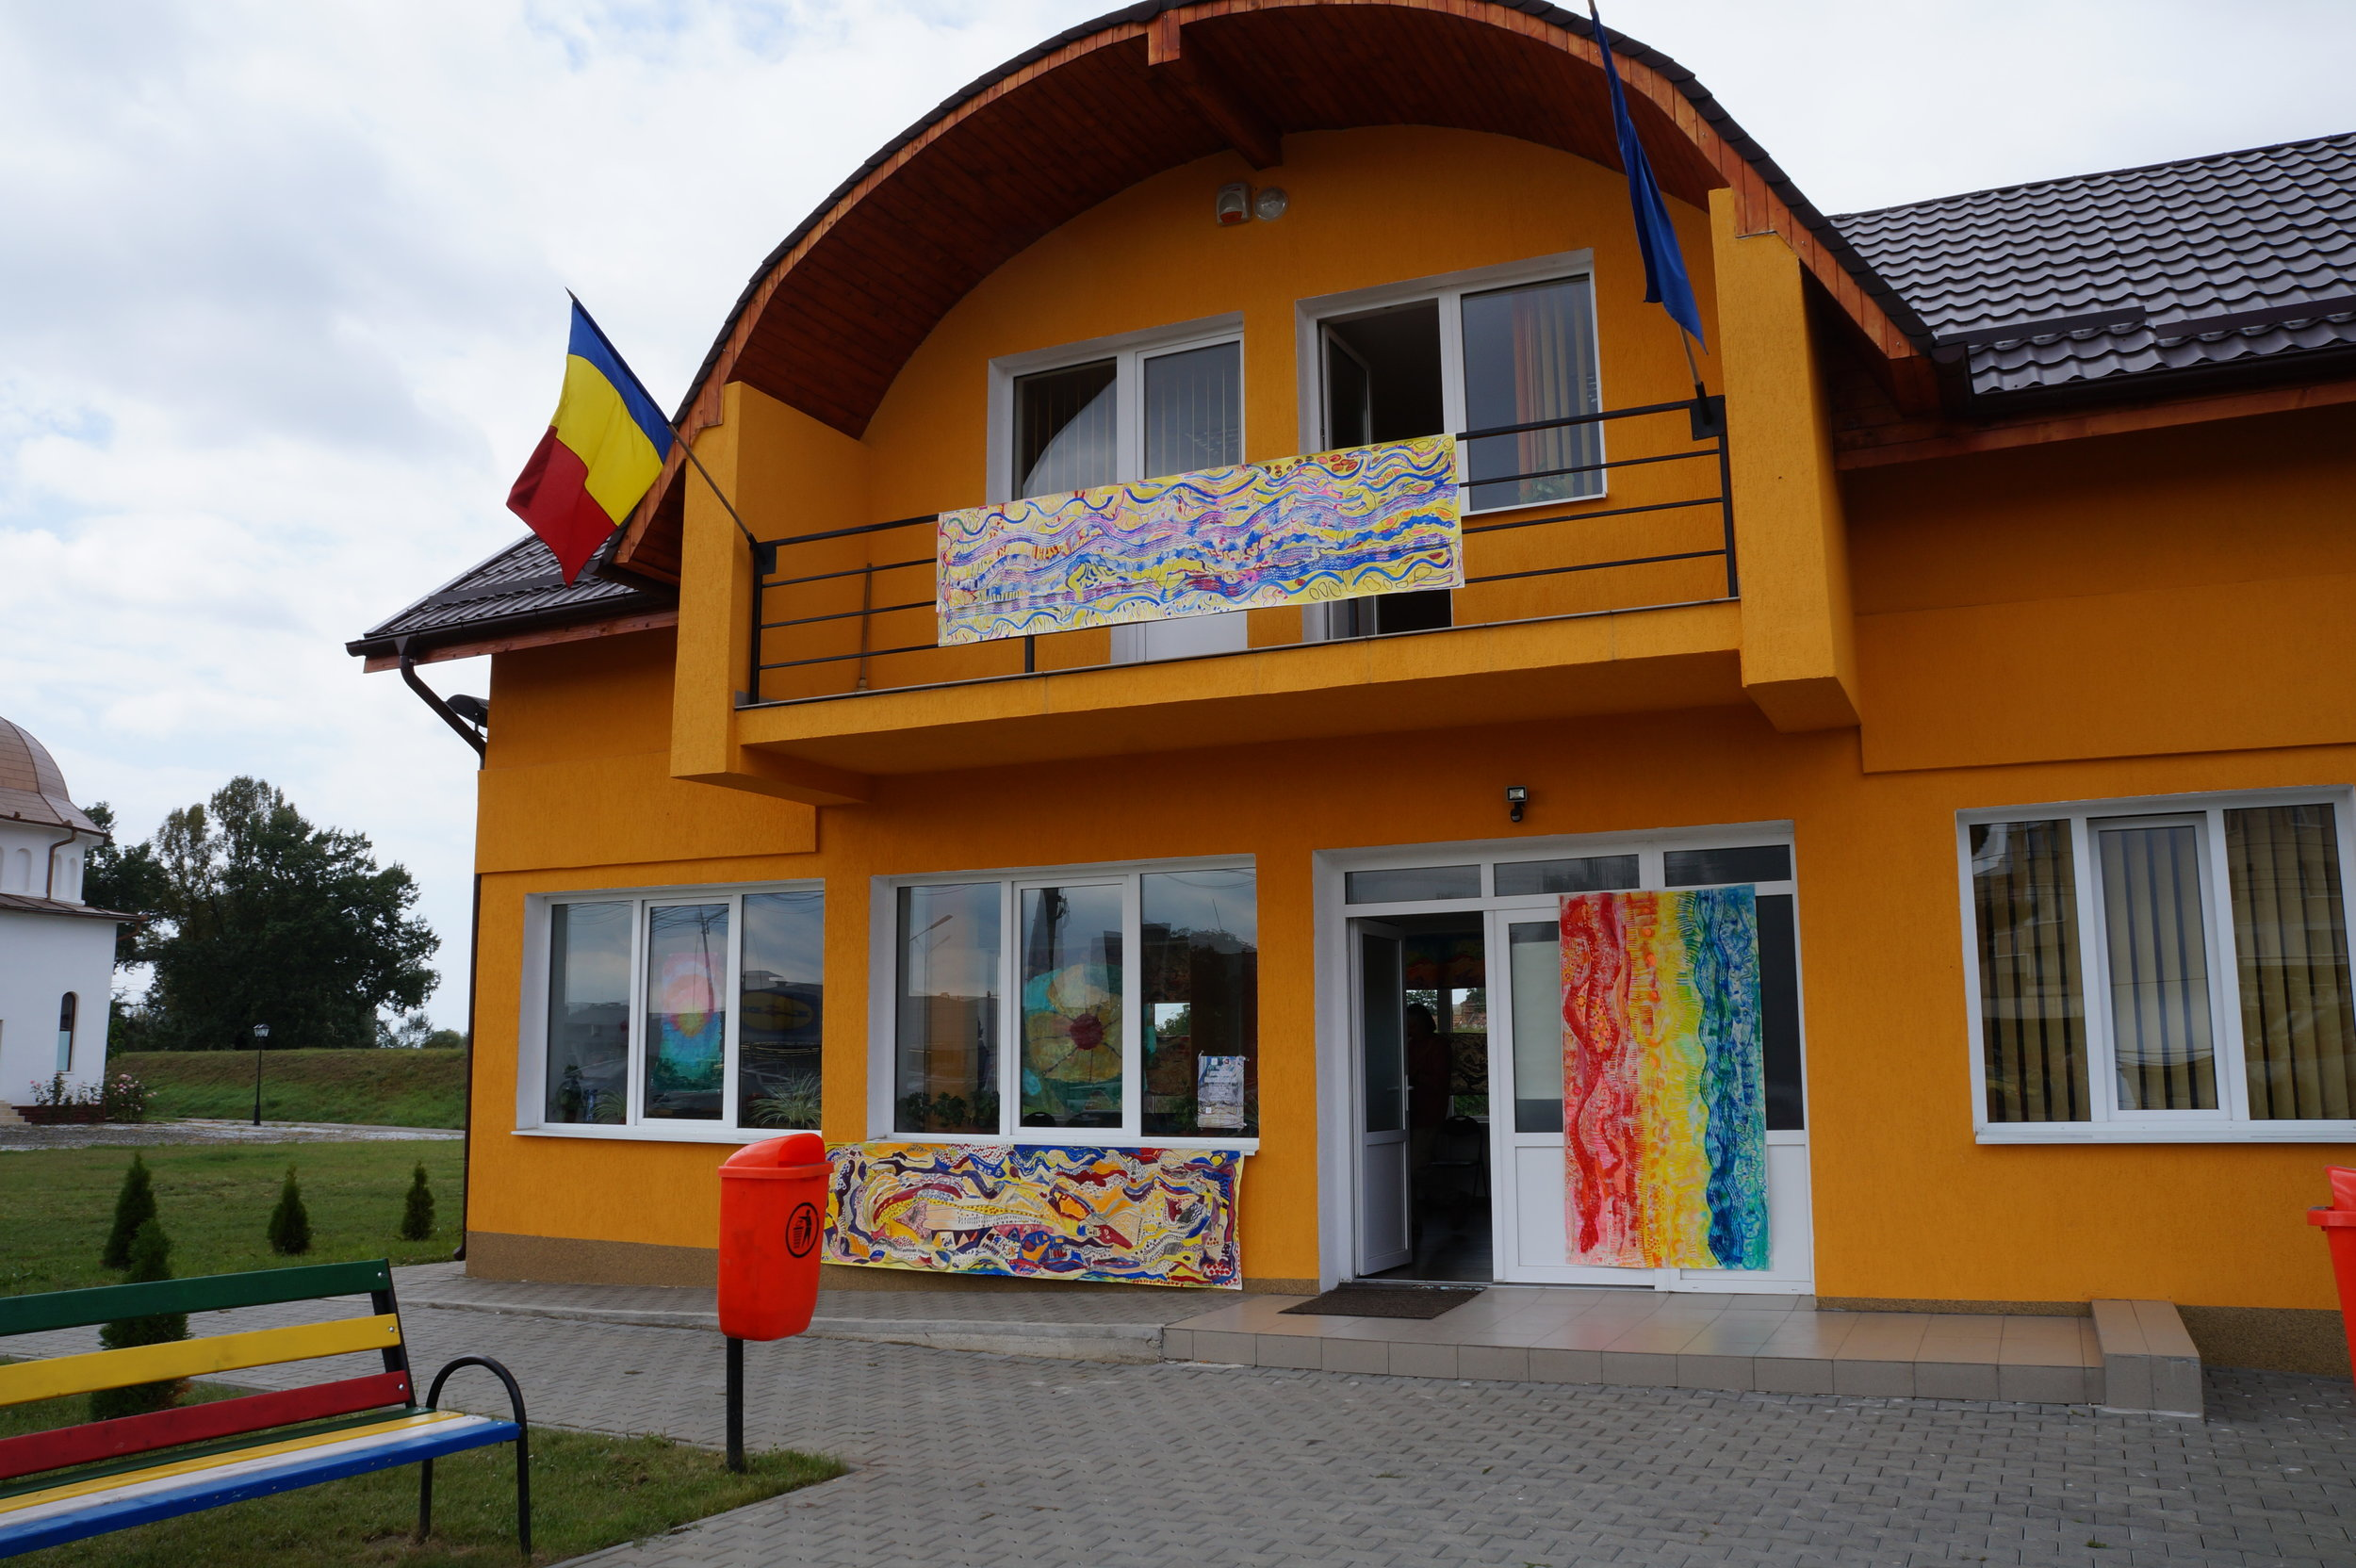 The Exhibition was inside and outside the new Tarnaveni Community Centre.